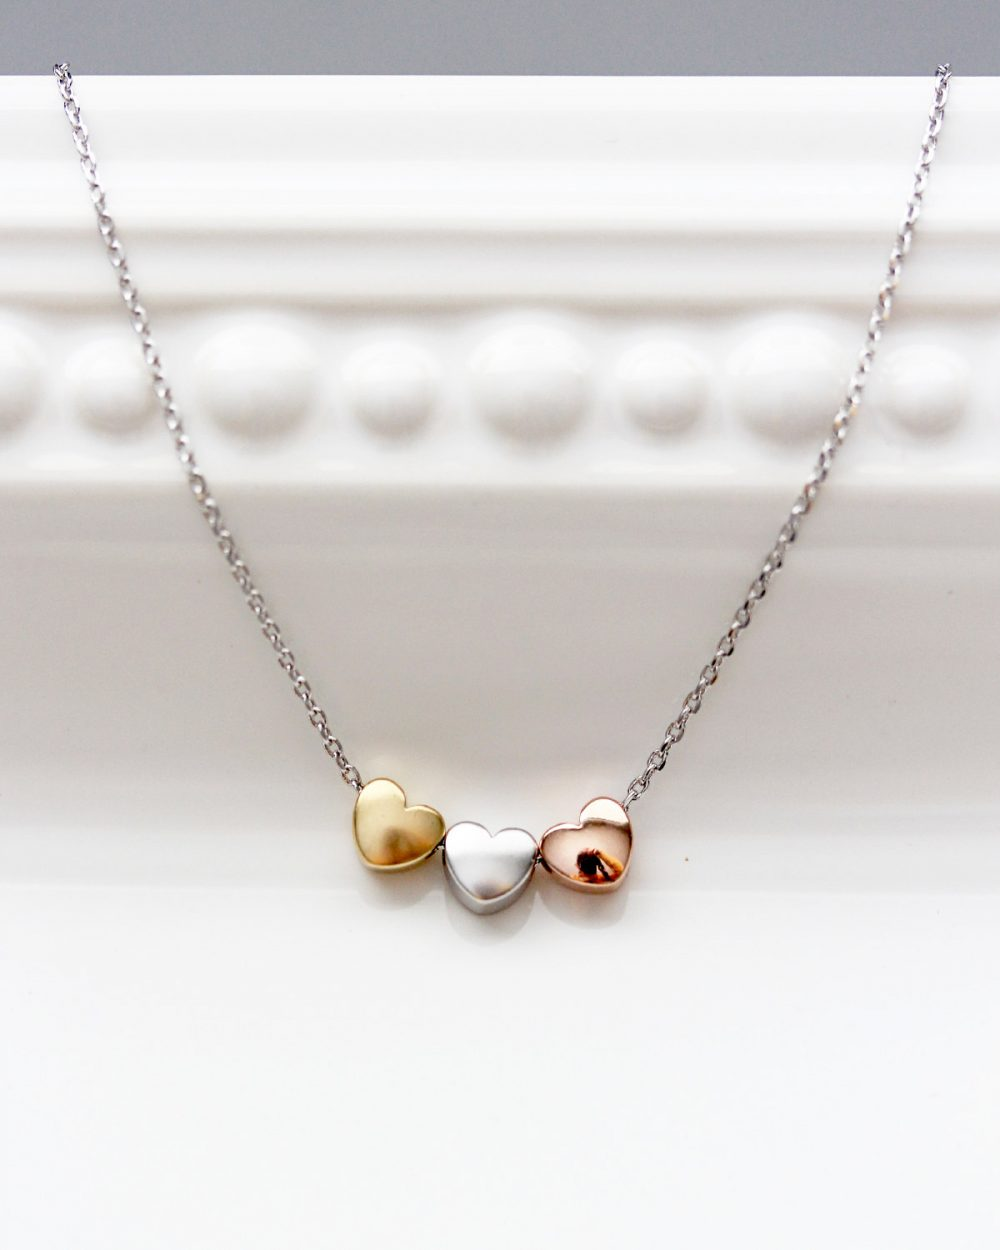 Three Hearts Necklace, Tri Tone Charm Silver Gold Rose Necklace Bridal Bridesmaid Gift Wedding Heart Jewelry Love Dainty Chr